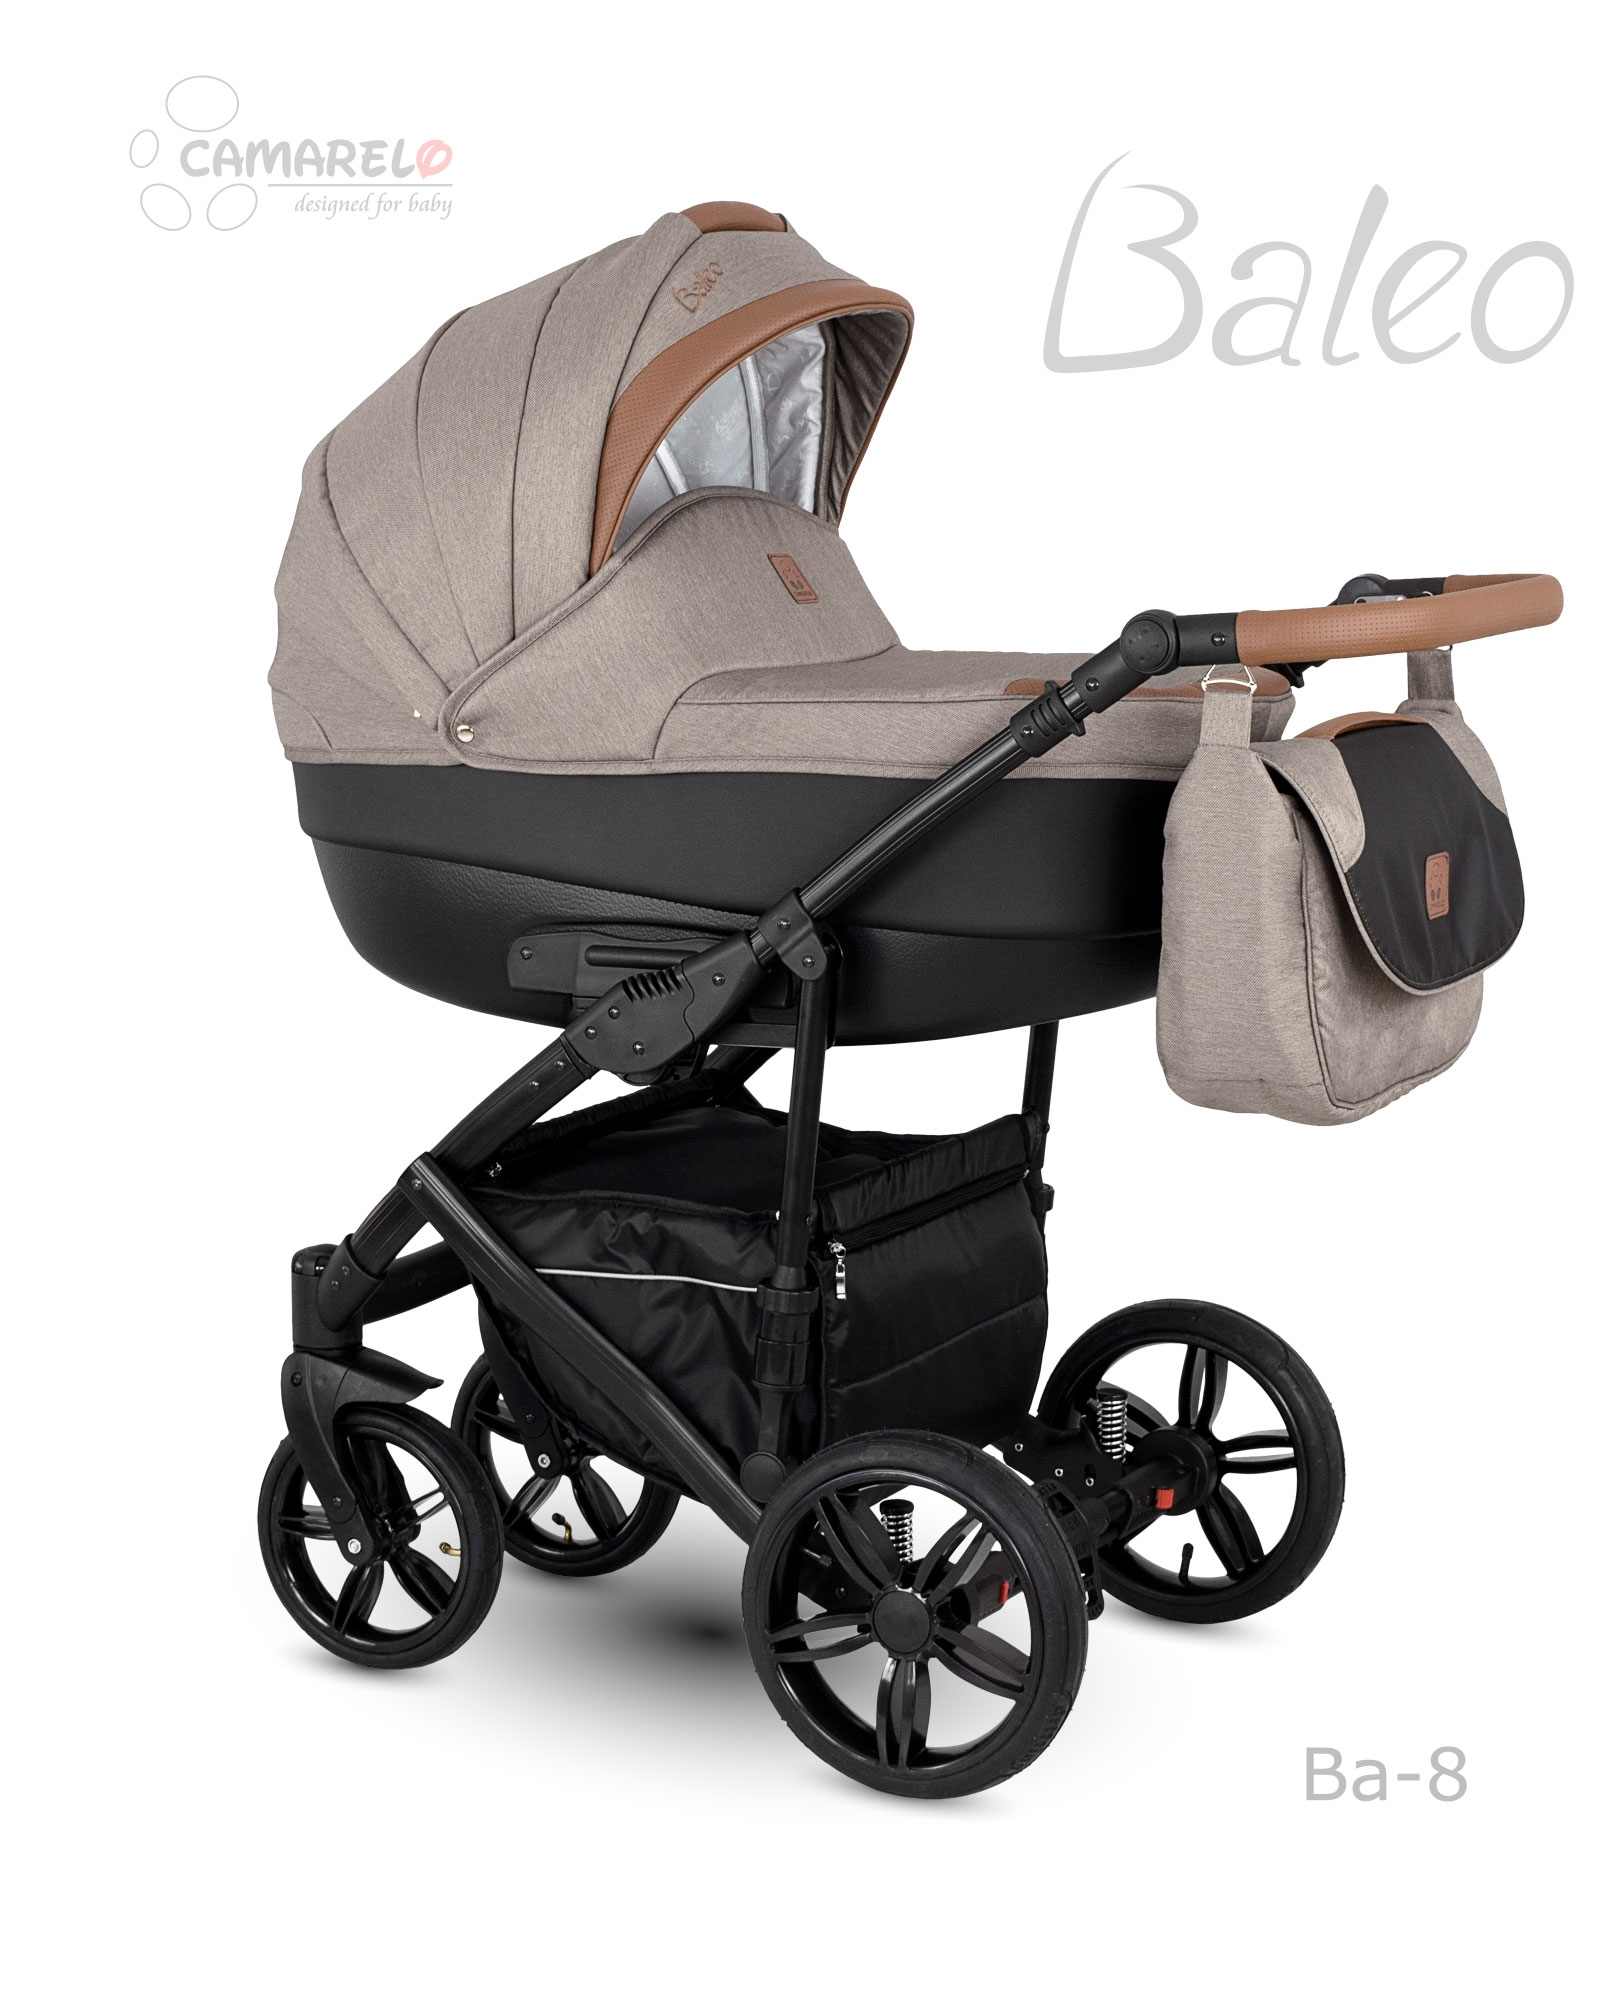 Carucior copii 2 in 1 Baleo 2019 Camarelo Ba-8 imagine